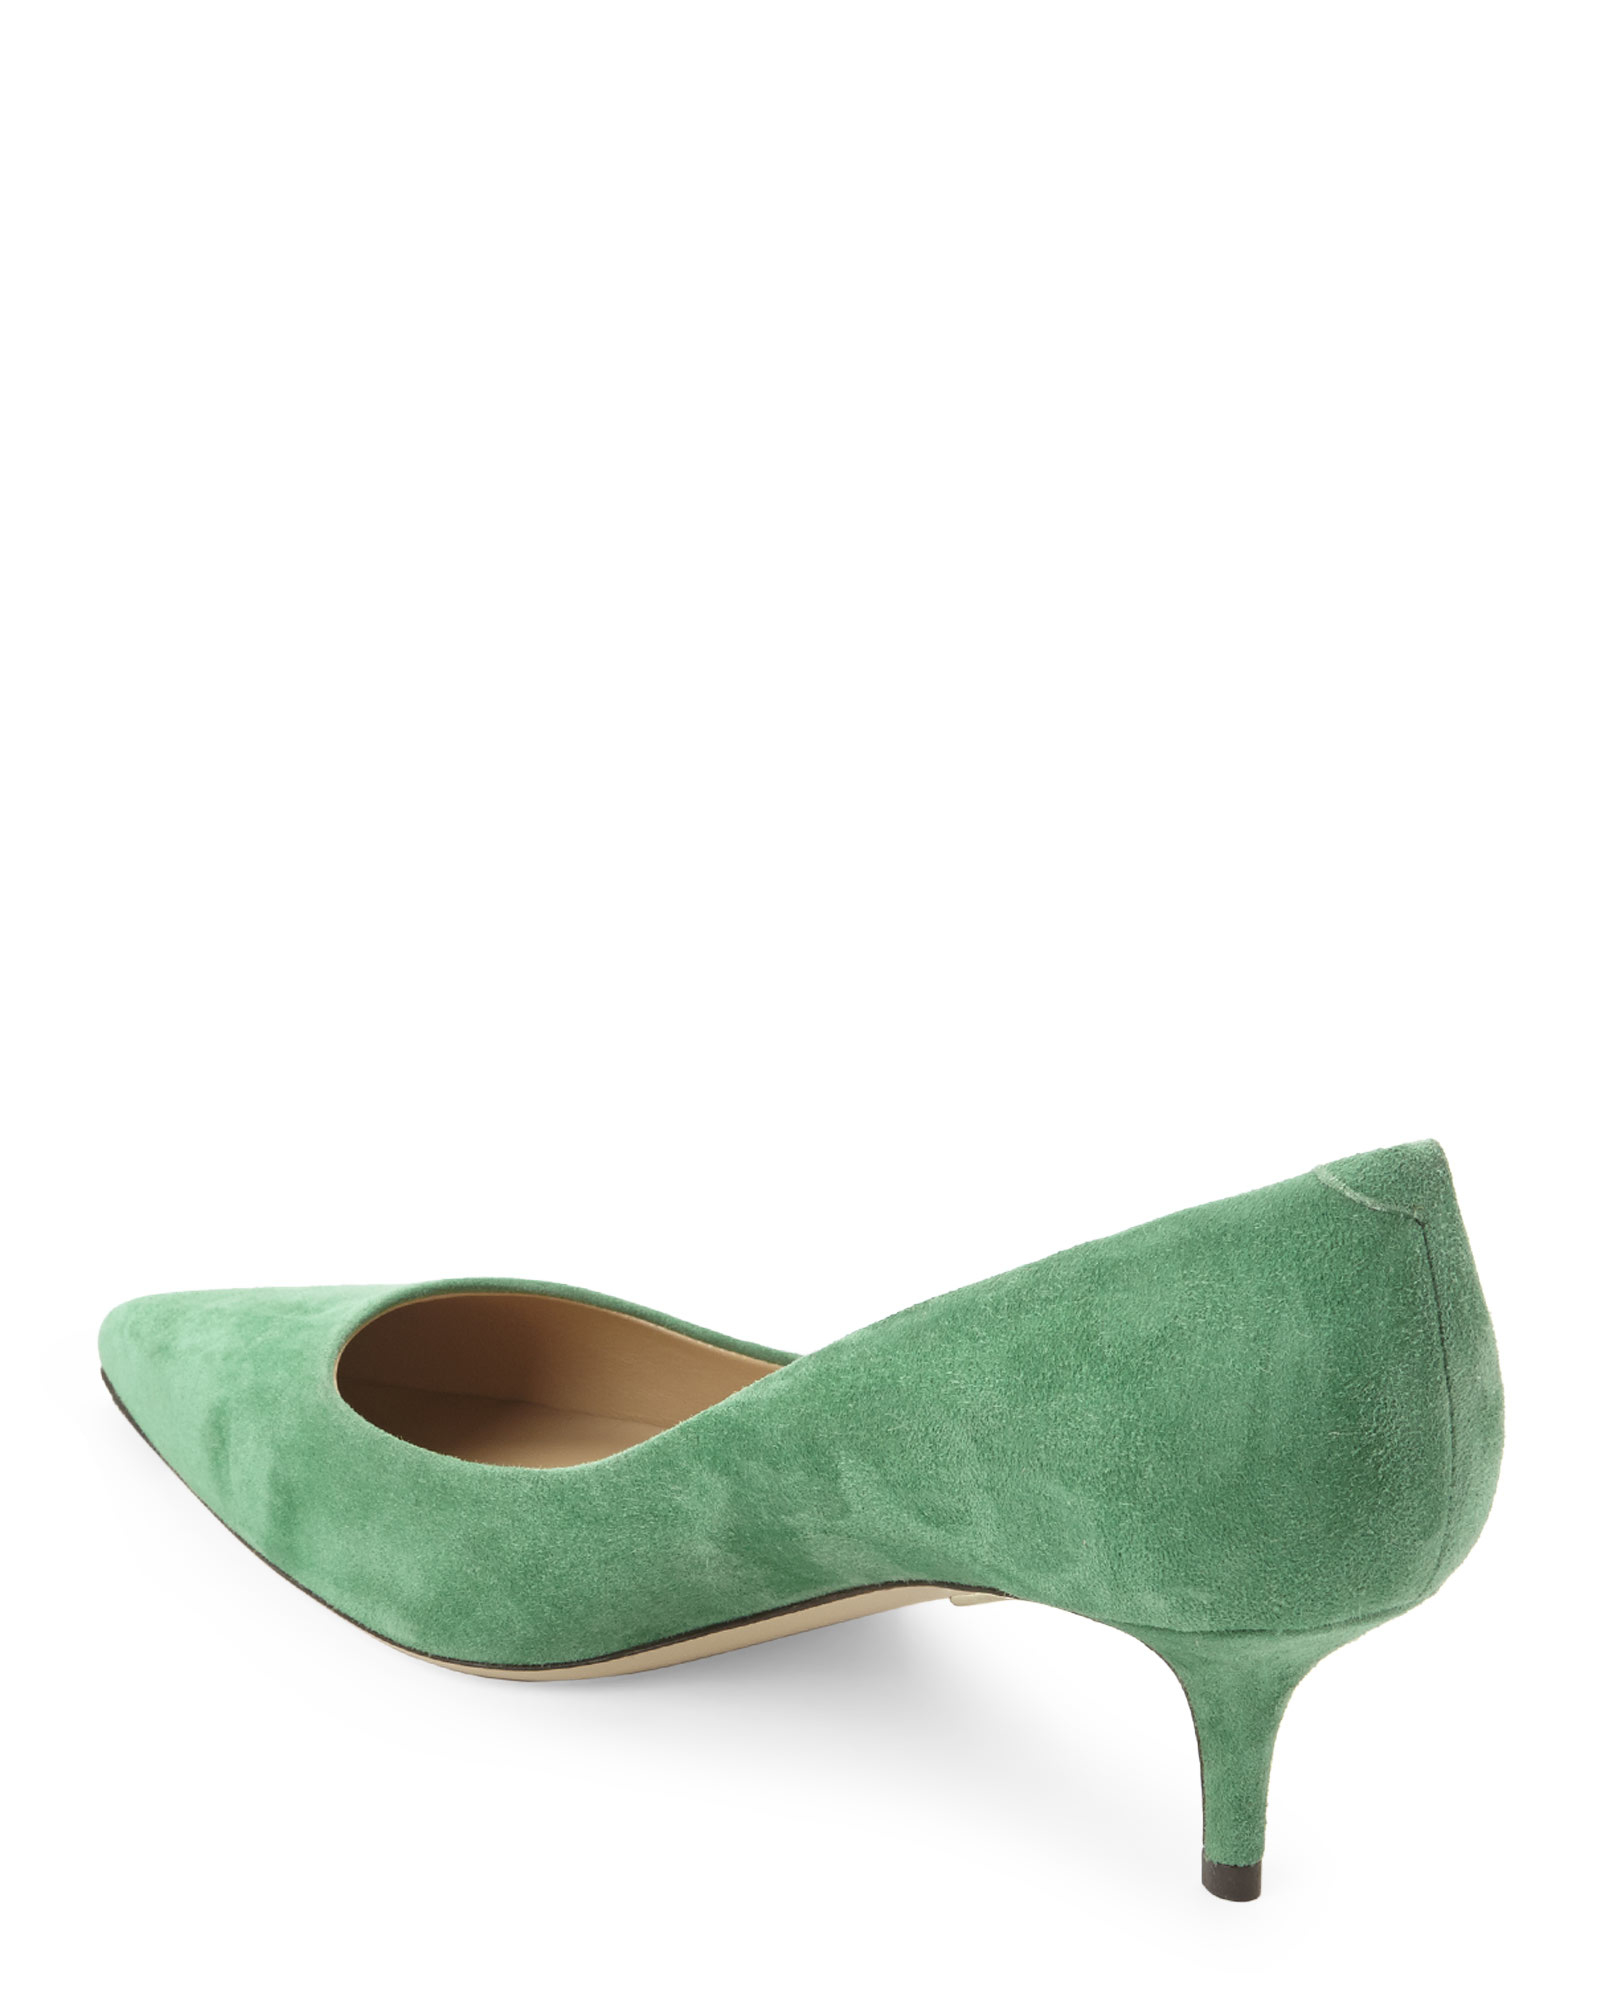 Roger vivier Green Suede Kitten Heels in Green | Lyst